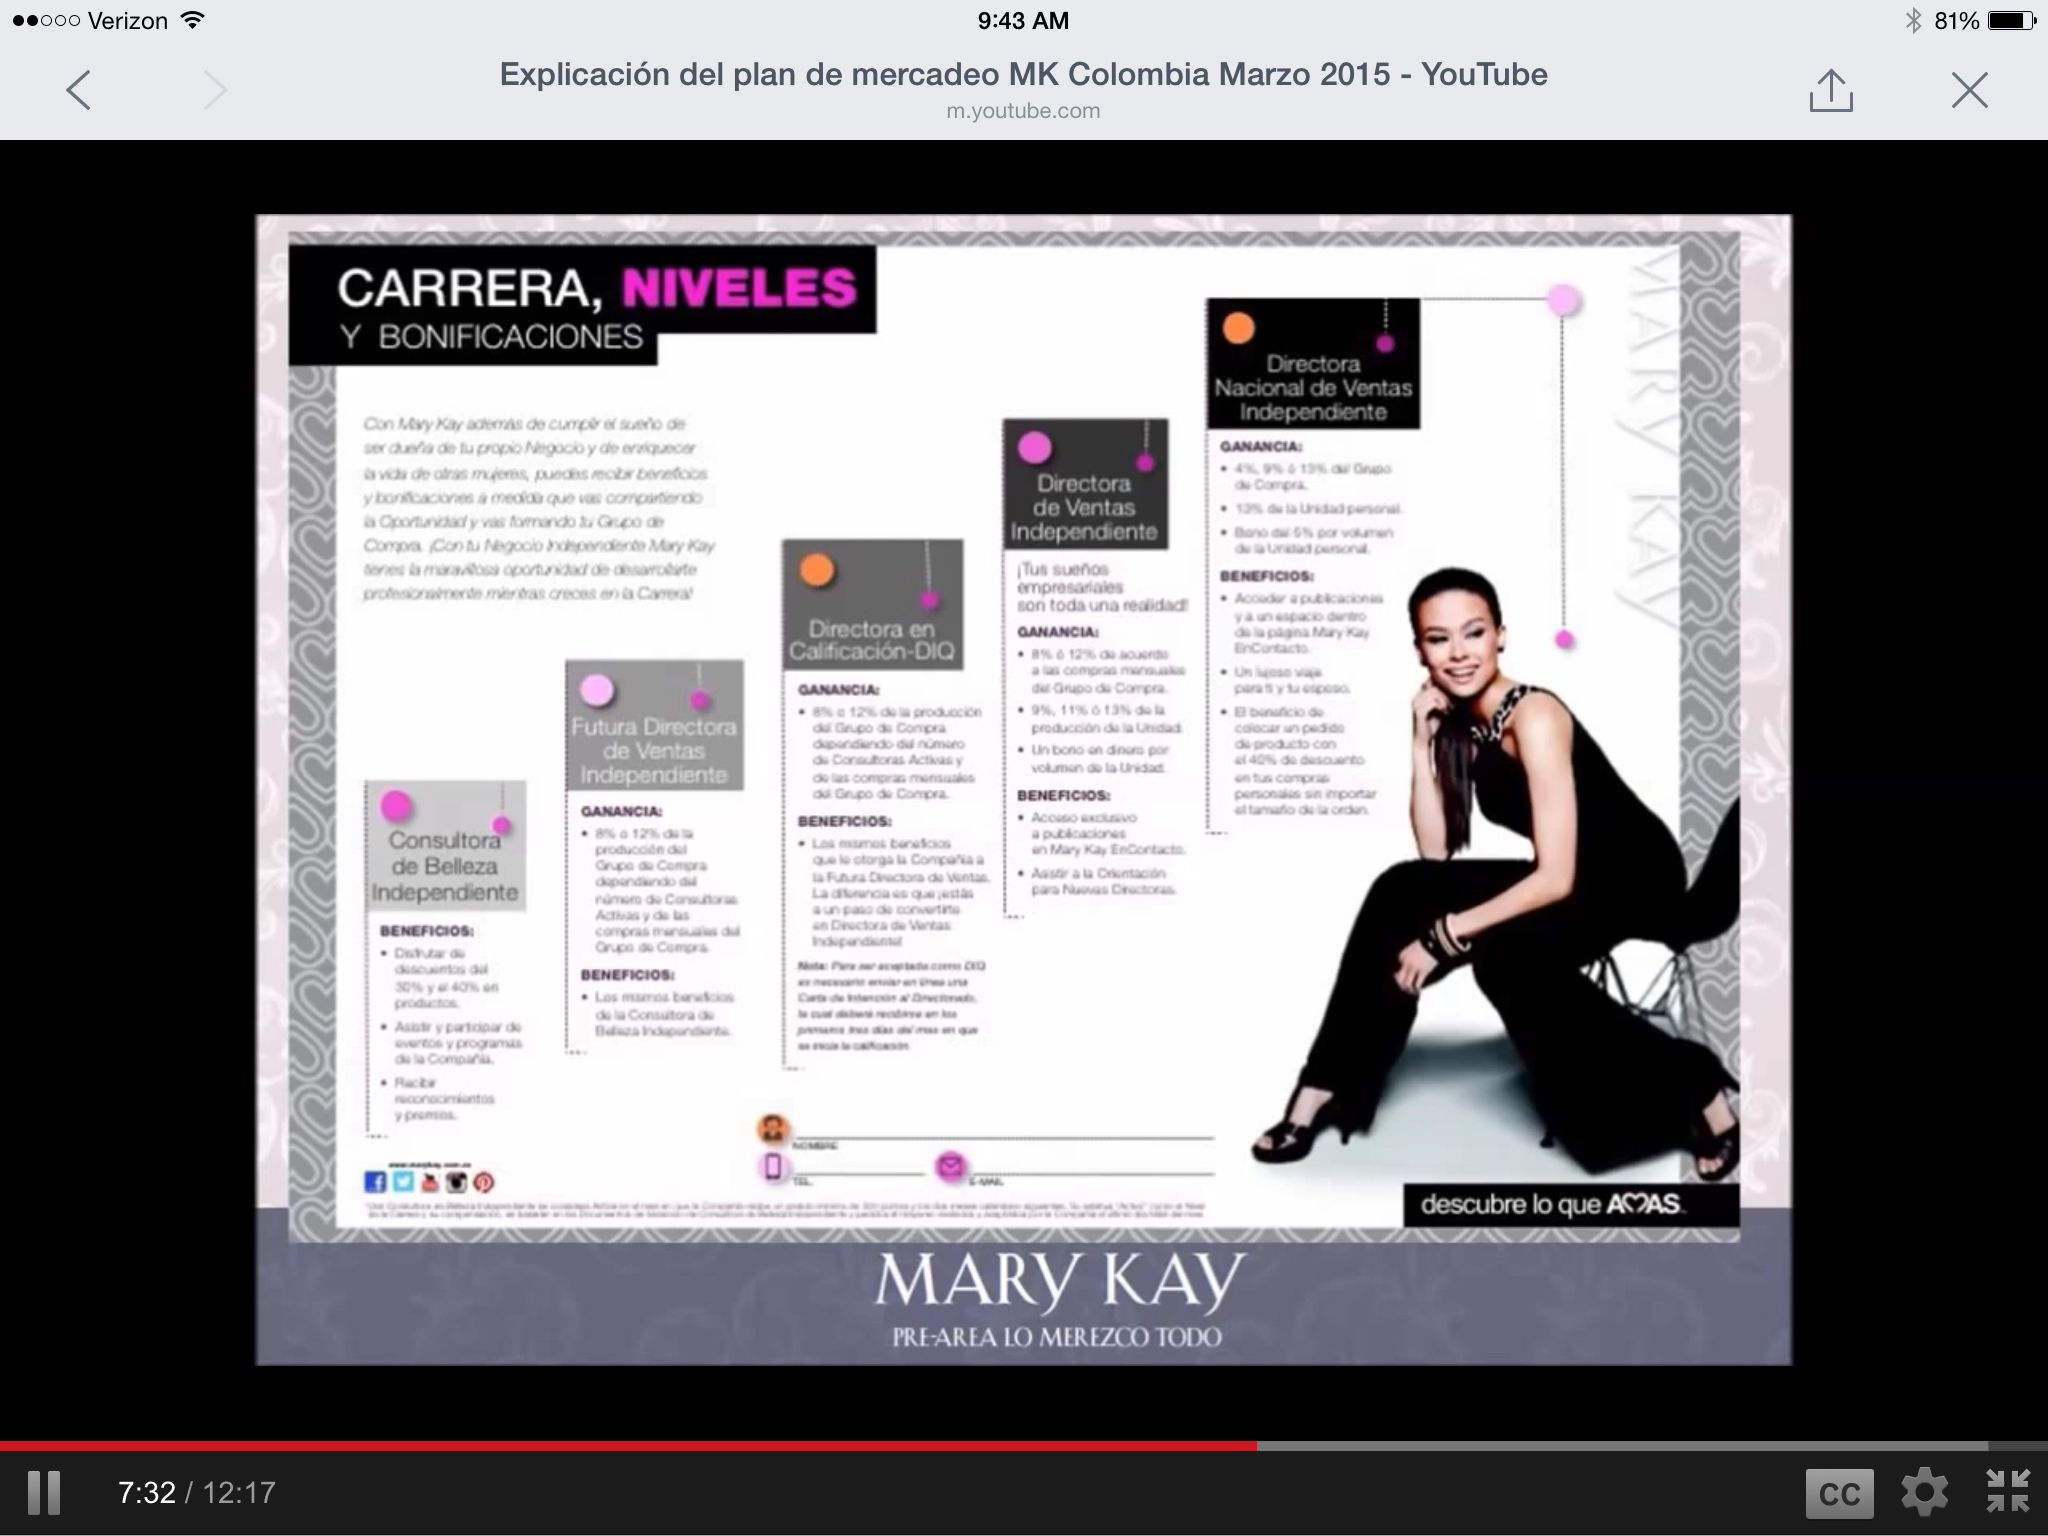 Mary kay online agreement on intouch - Carrera